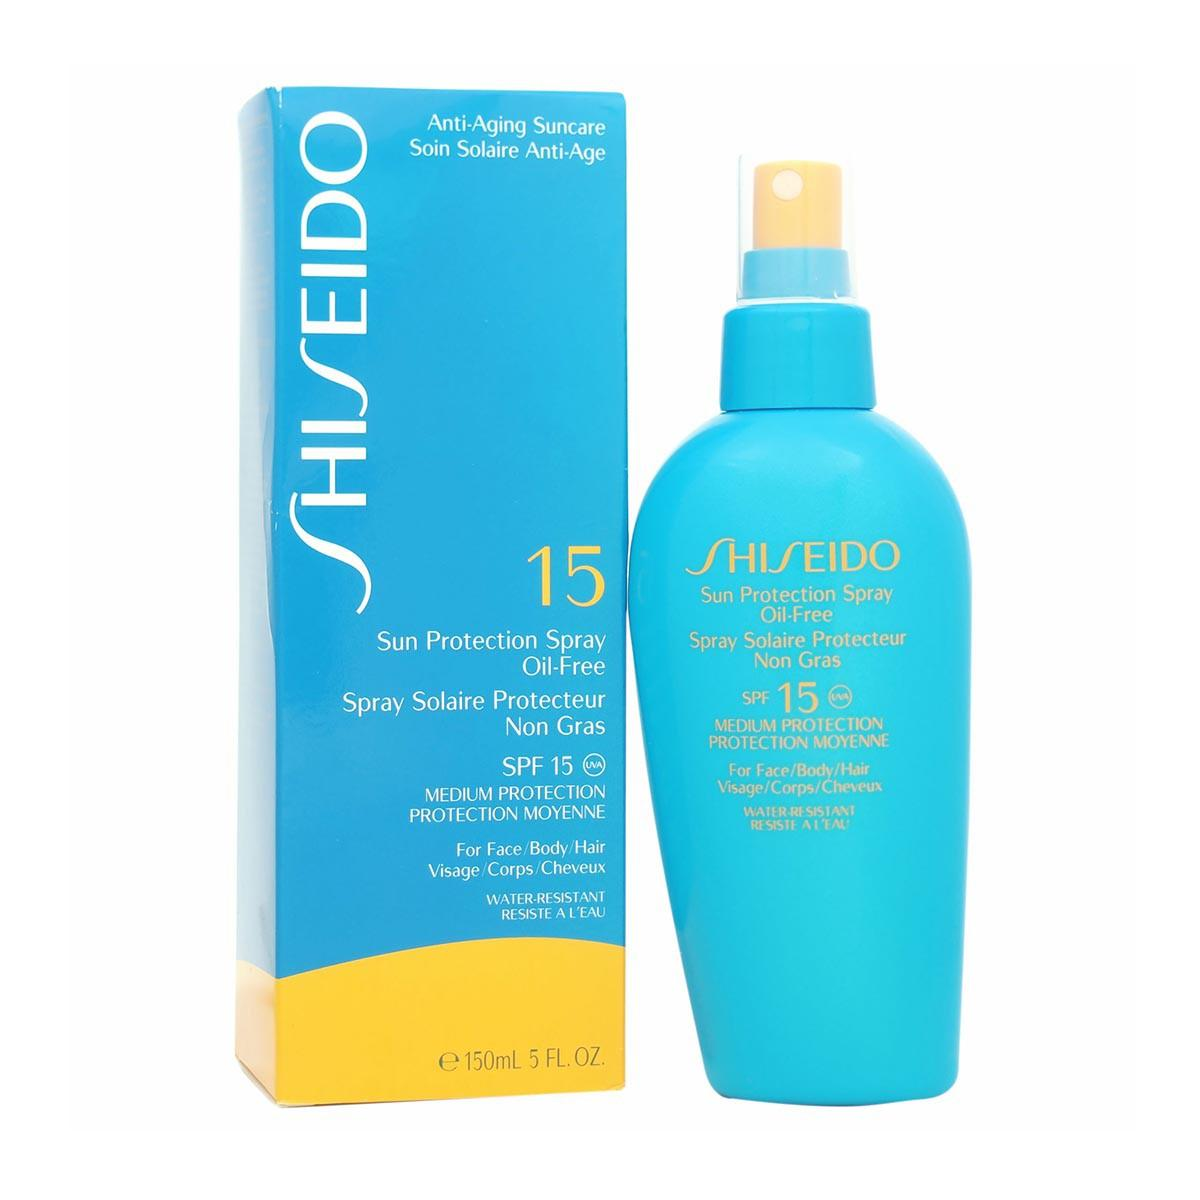 Shiseido fragrances Antiaging Suncare Sun Protection Oil Free Spray 150ml